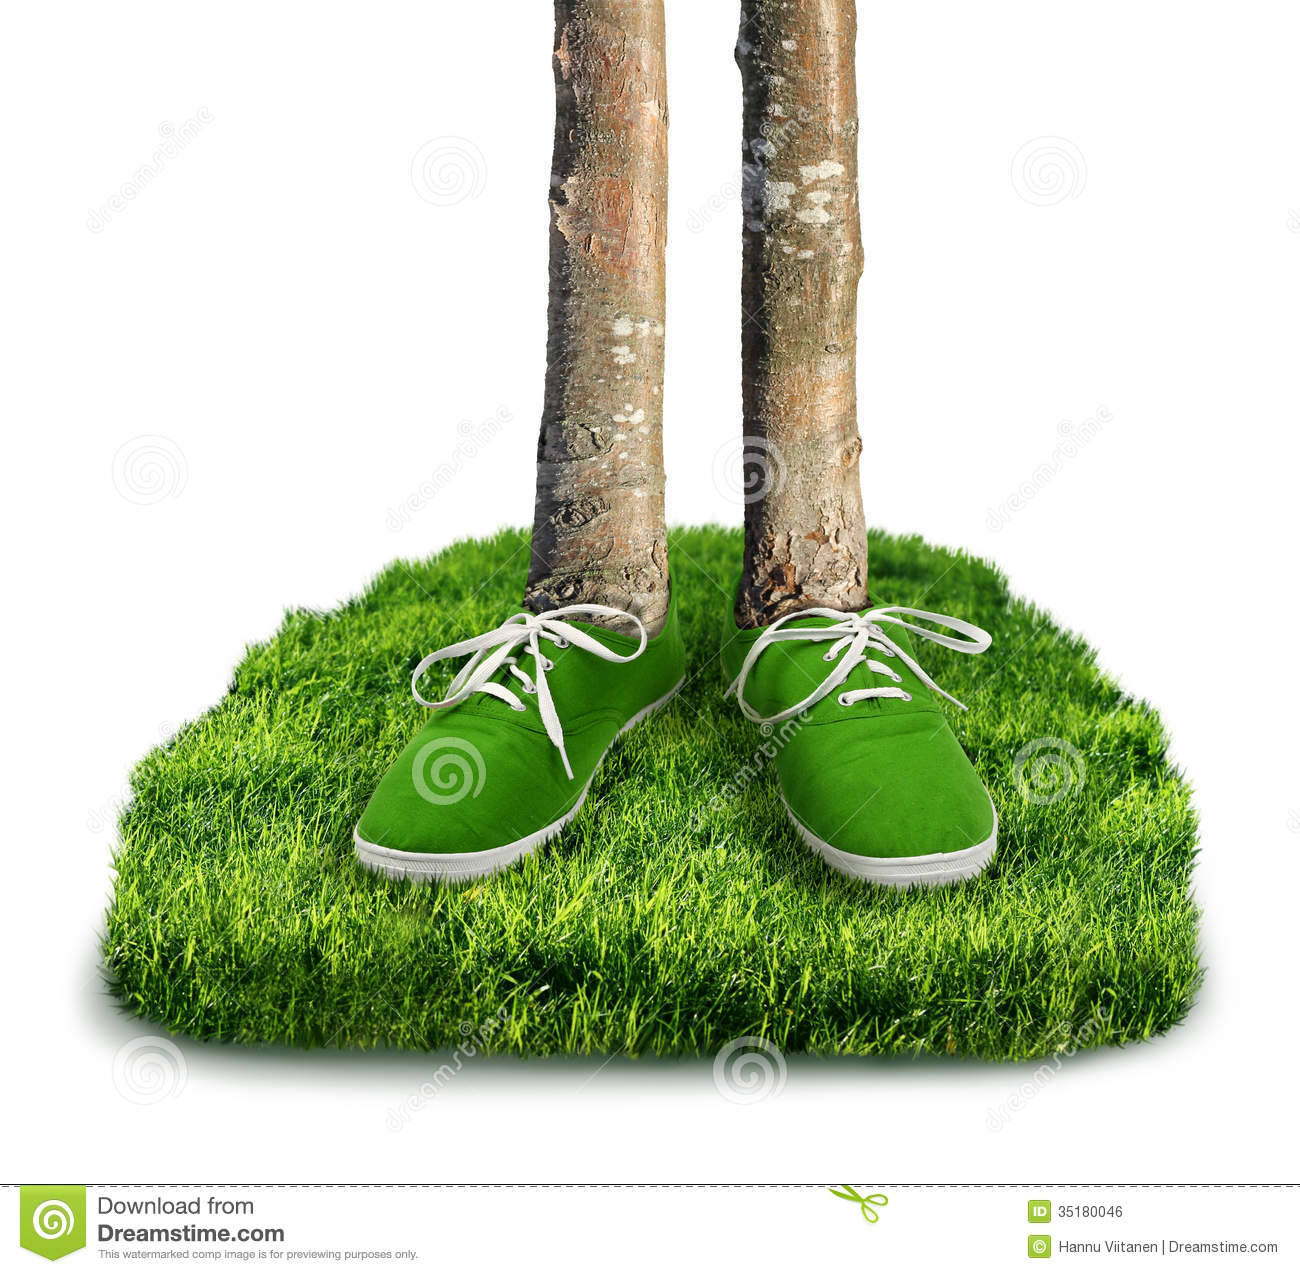 concepts of ecological footprints The ecological footprint is based on the concepts of capacity and the precautionary principle which though out without their critics (kooten and bulte, 2000), are commonly accepted in the field of ecological impact assessment (rees, 1996.